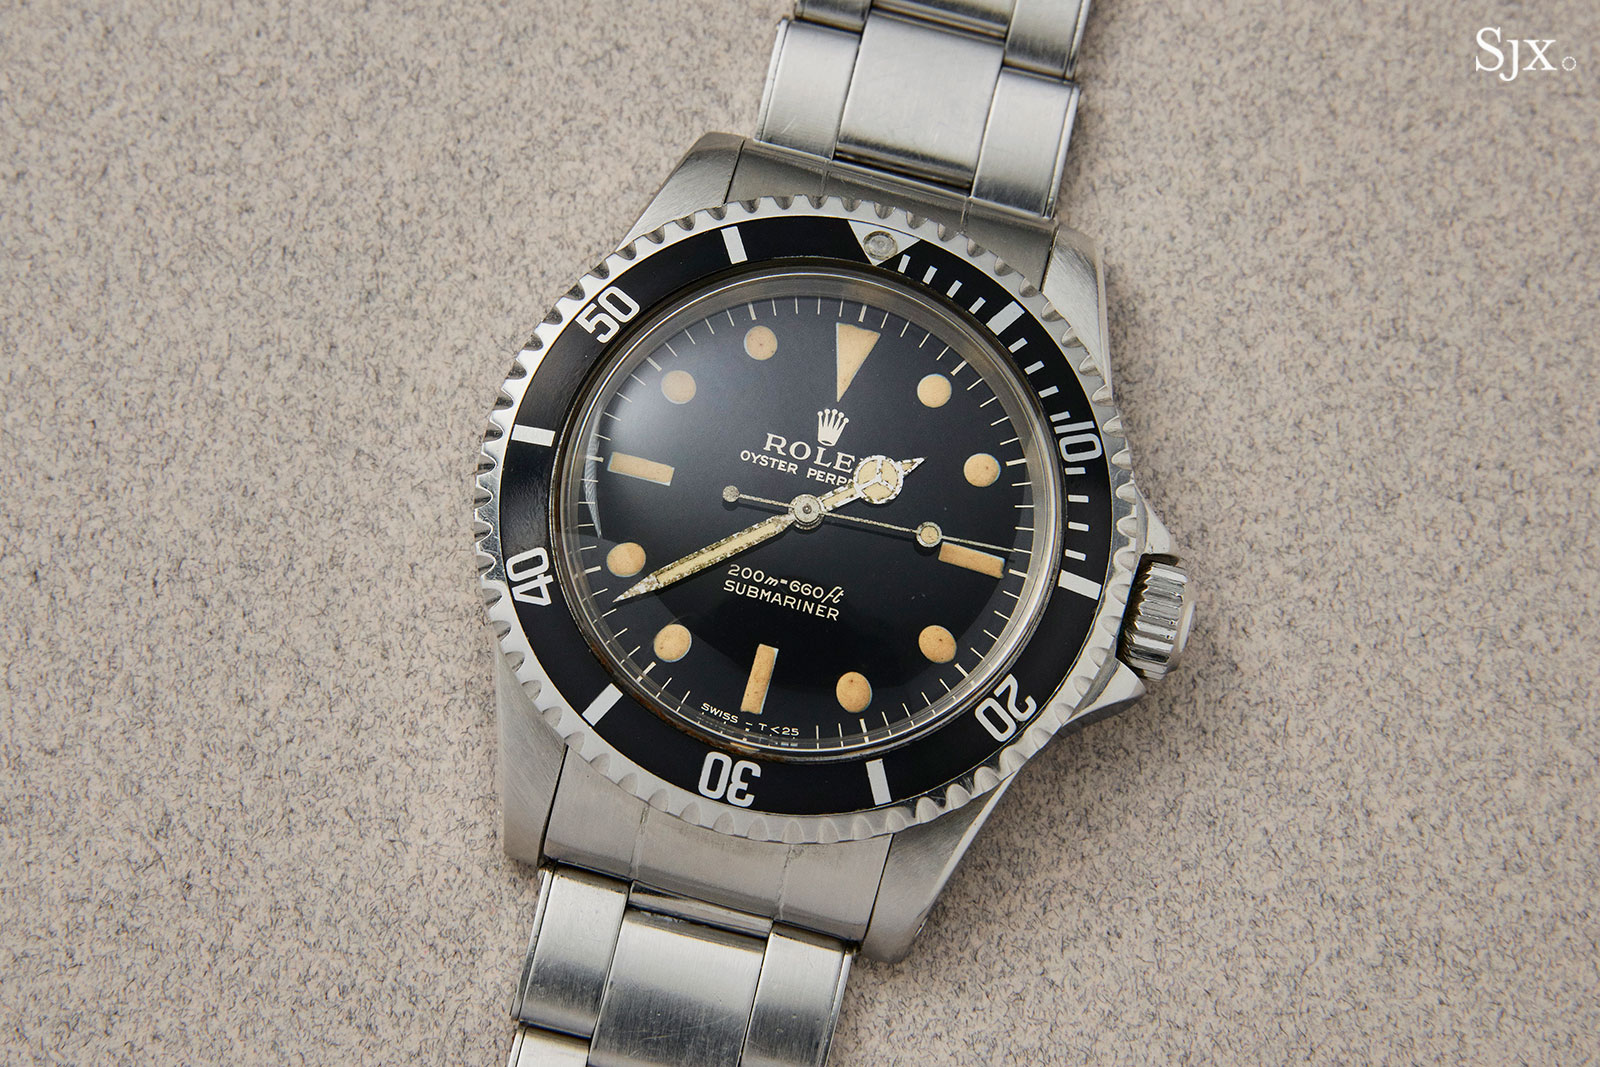 Rolex Submariner 5513 glossy dial 2